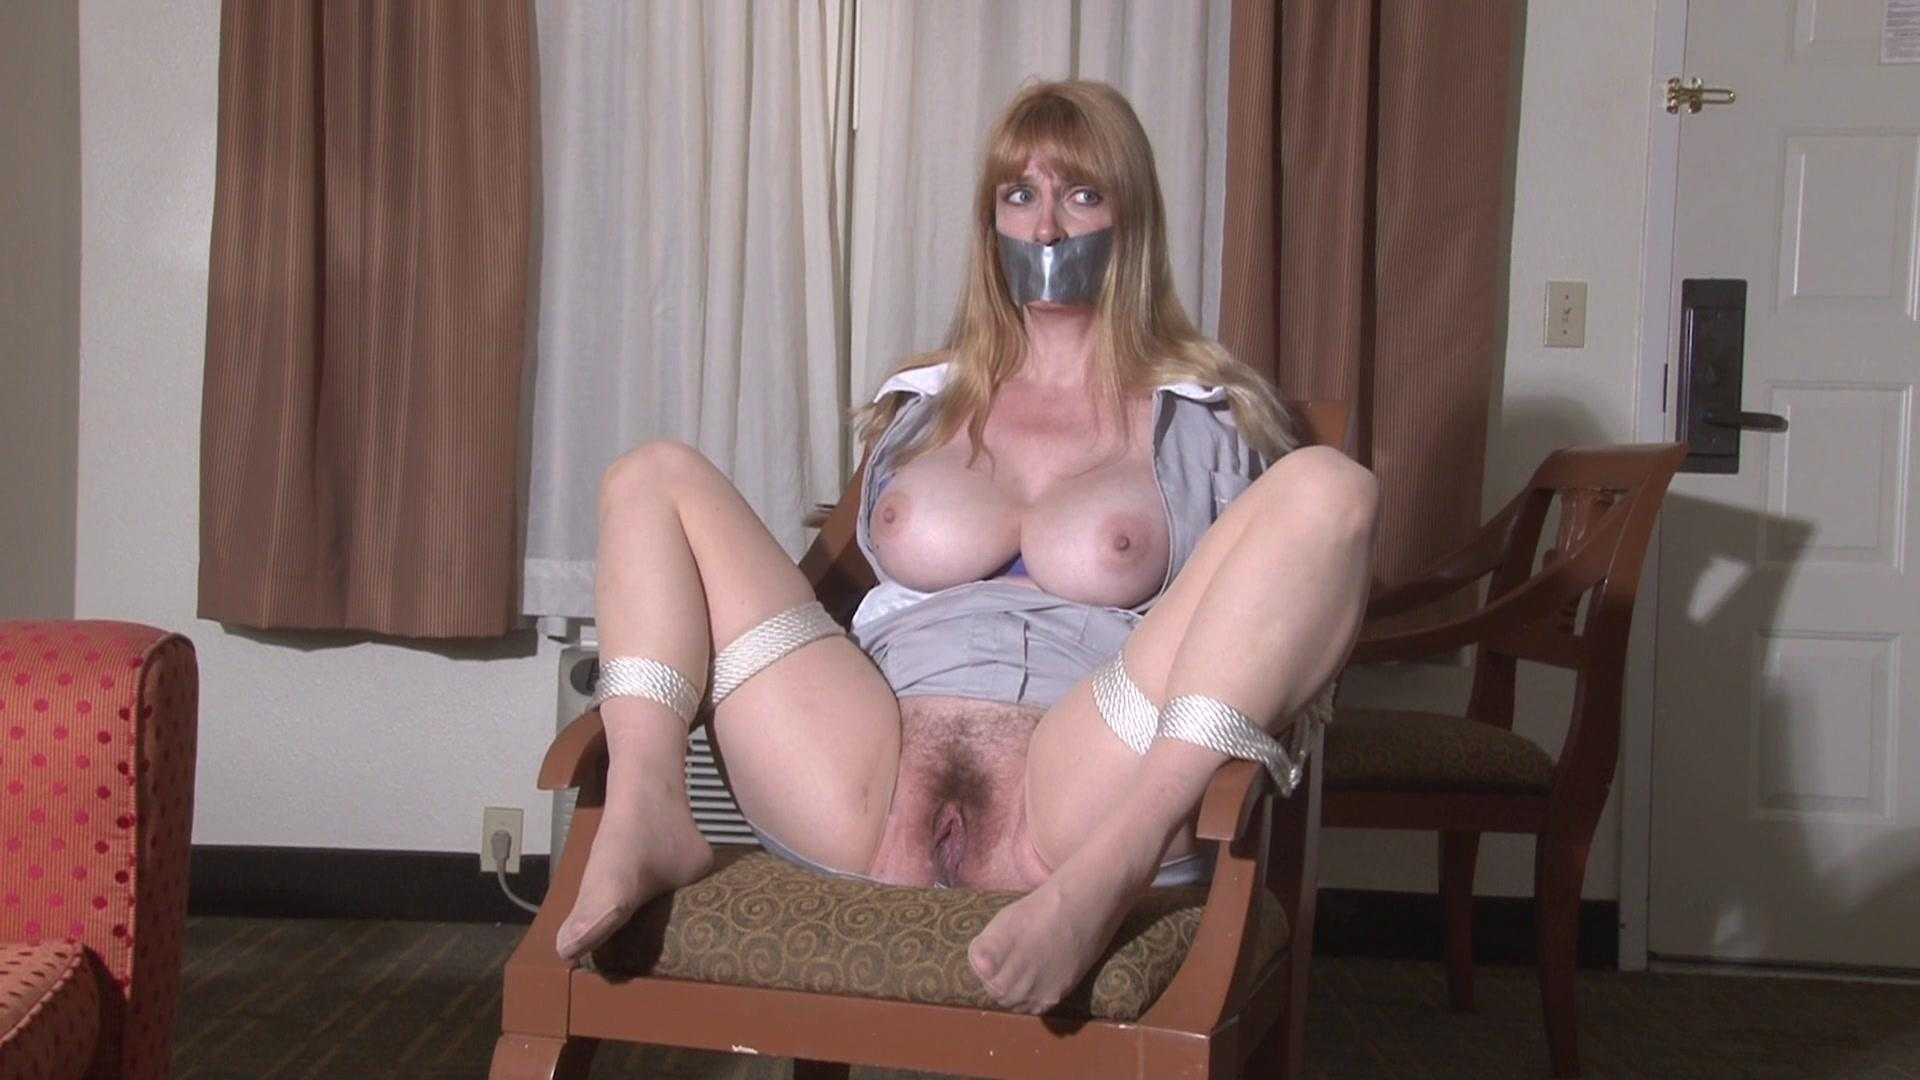 Hotel maid exposed lorelei